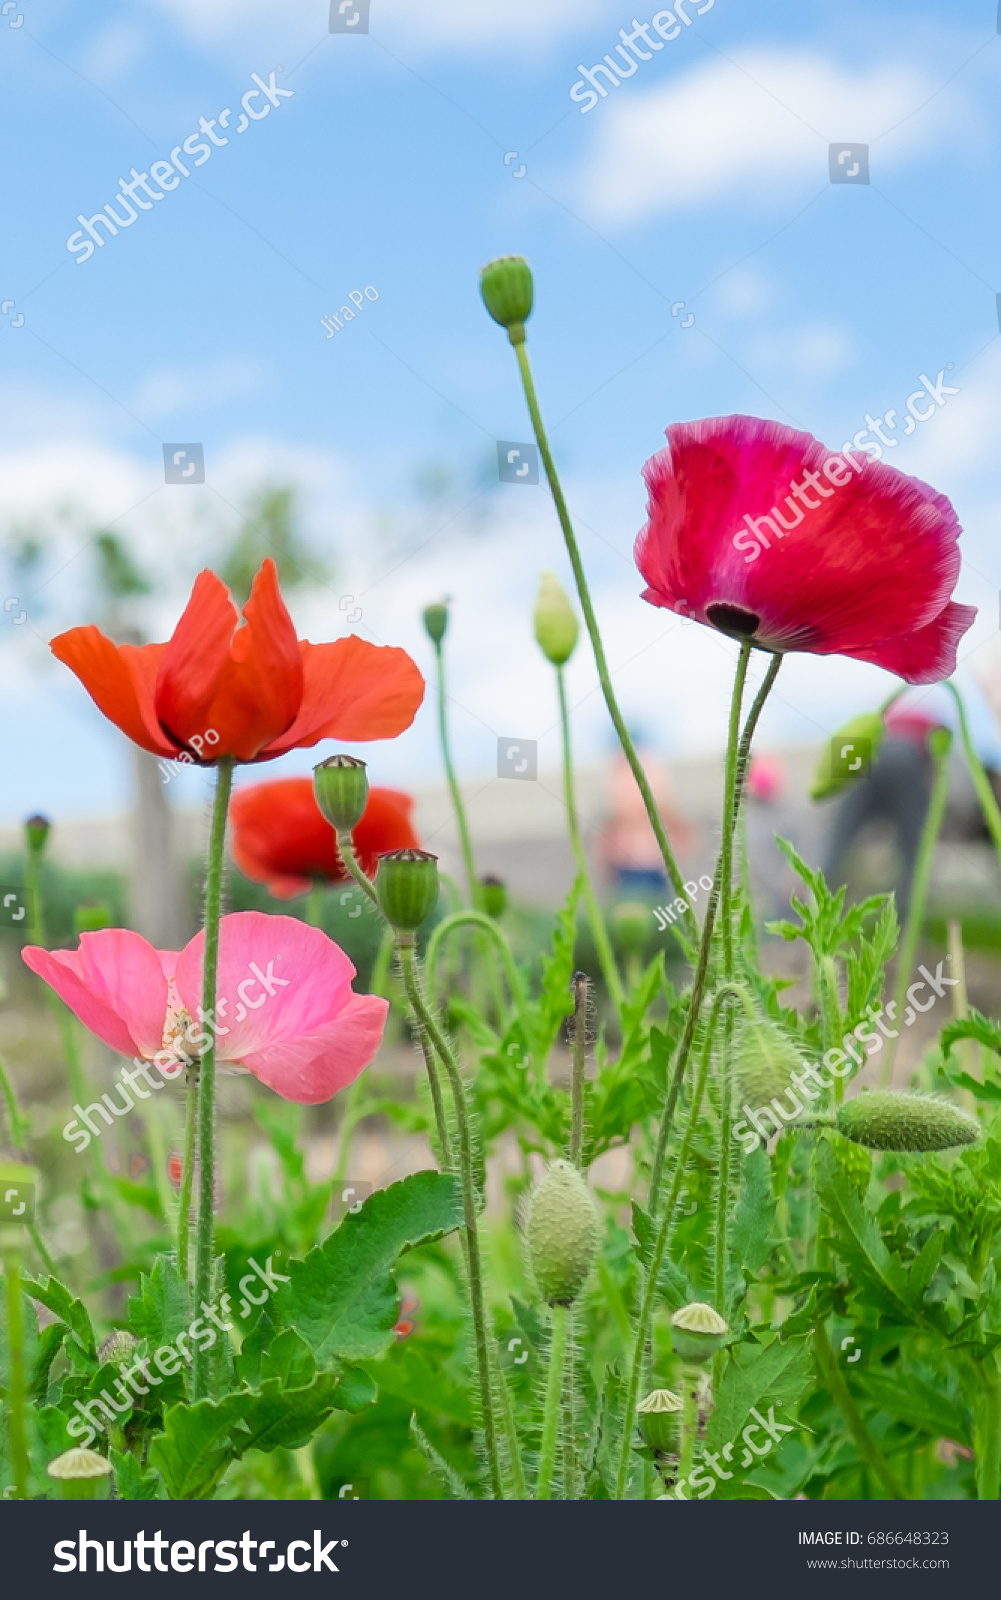 Orange Pink Red Poppy Flowers Growing Stock Photo Royalty Free